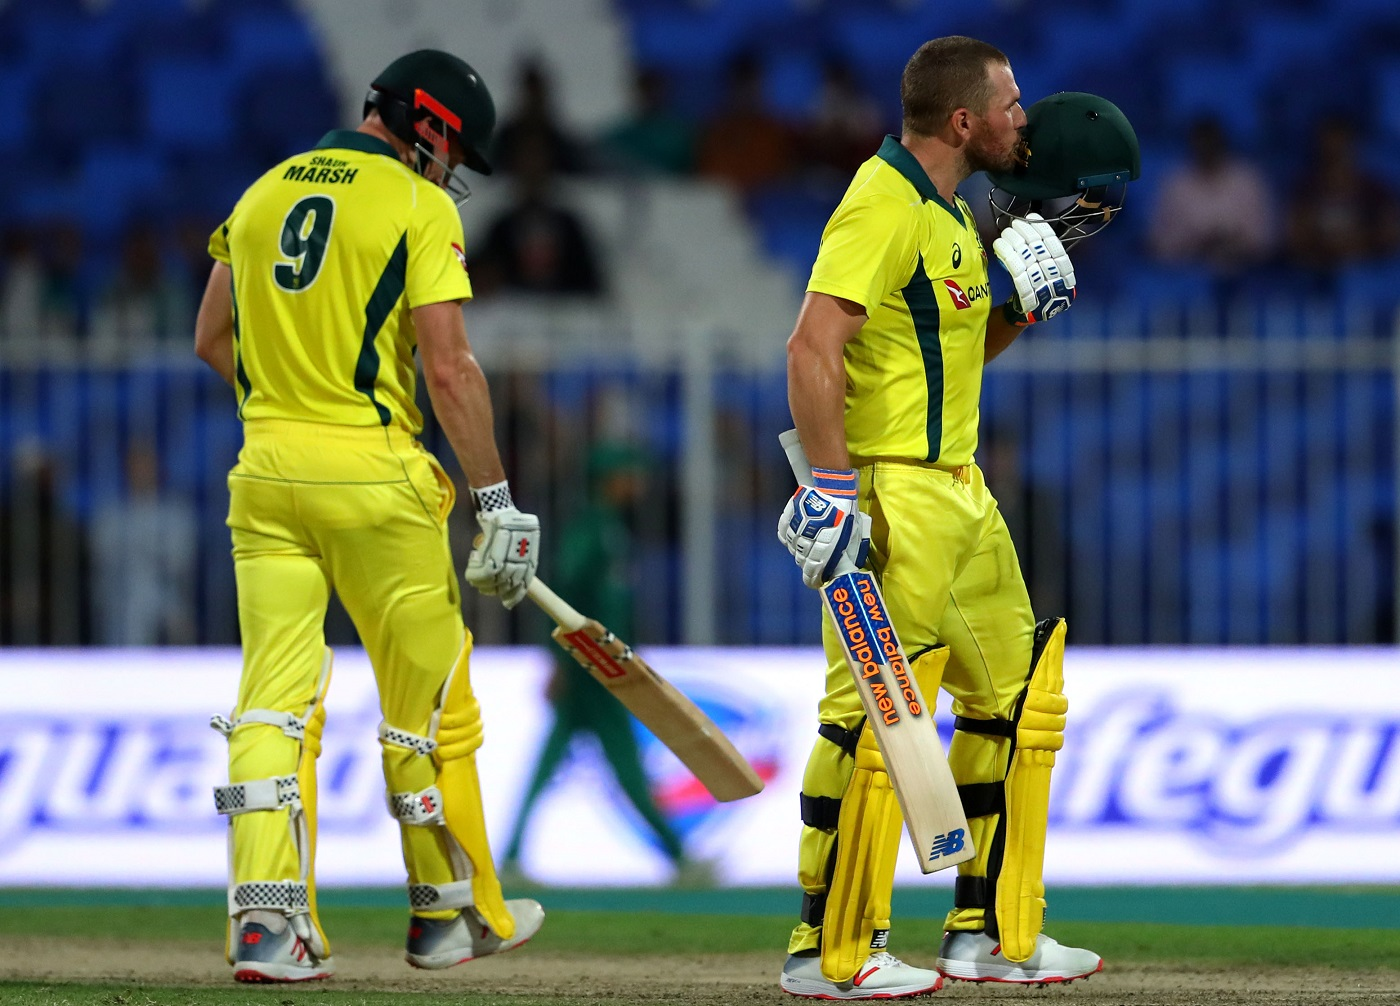 Australia comfortably defeat Pakistan by 8 wickets in first ODI at Sharjah